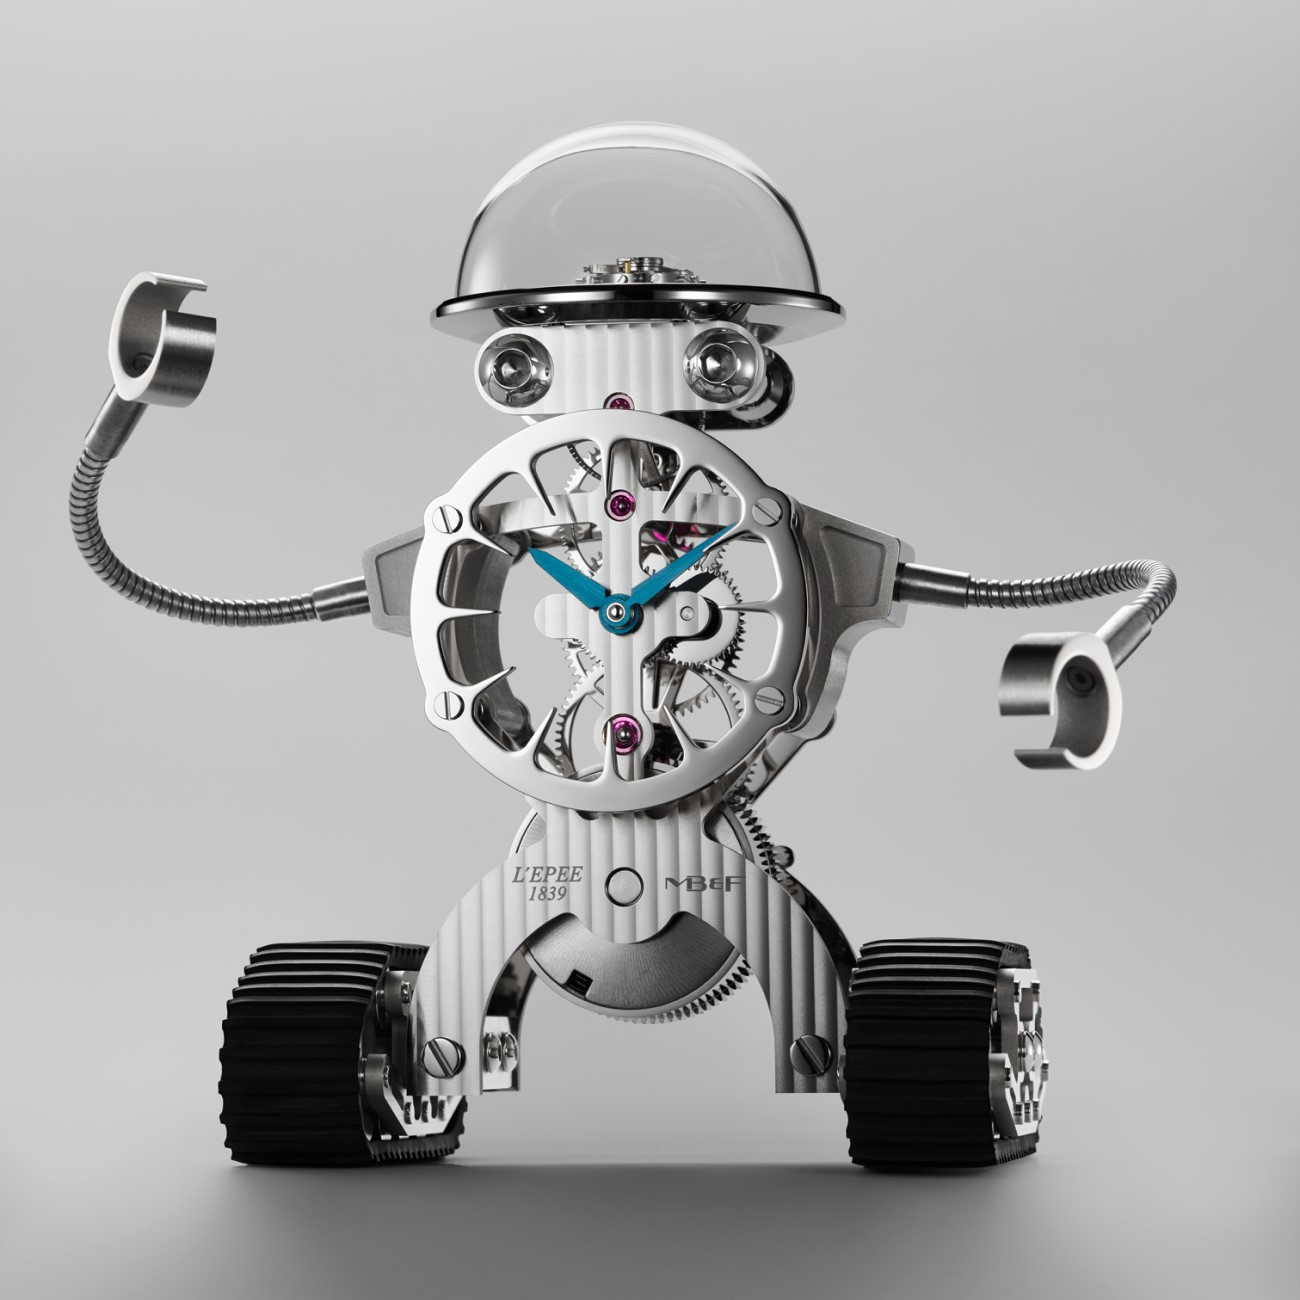 MB&F sherman l'epee table clock limited edition price